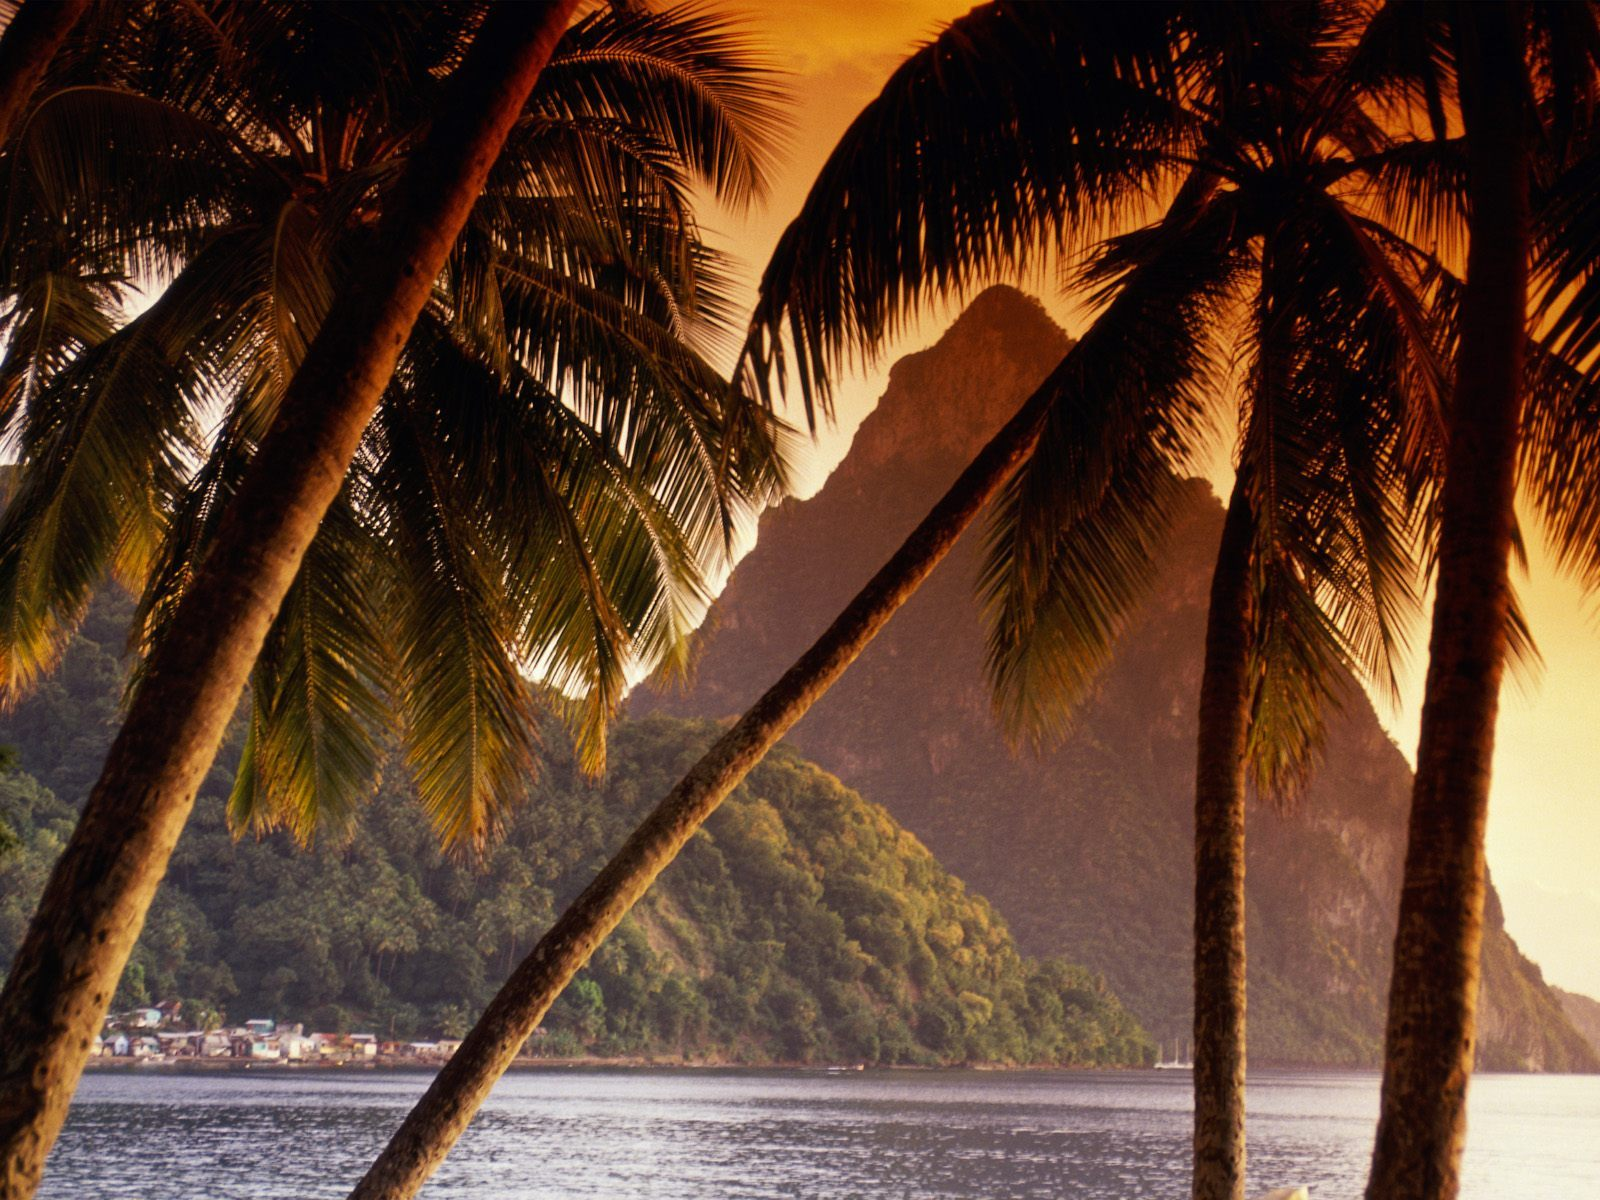 20980 download wallpaper Landscape, Mountains, Sea, Palms screensavers and pictures for free